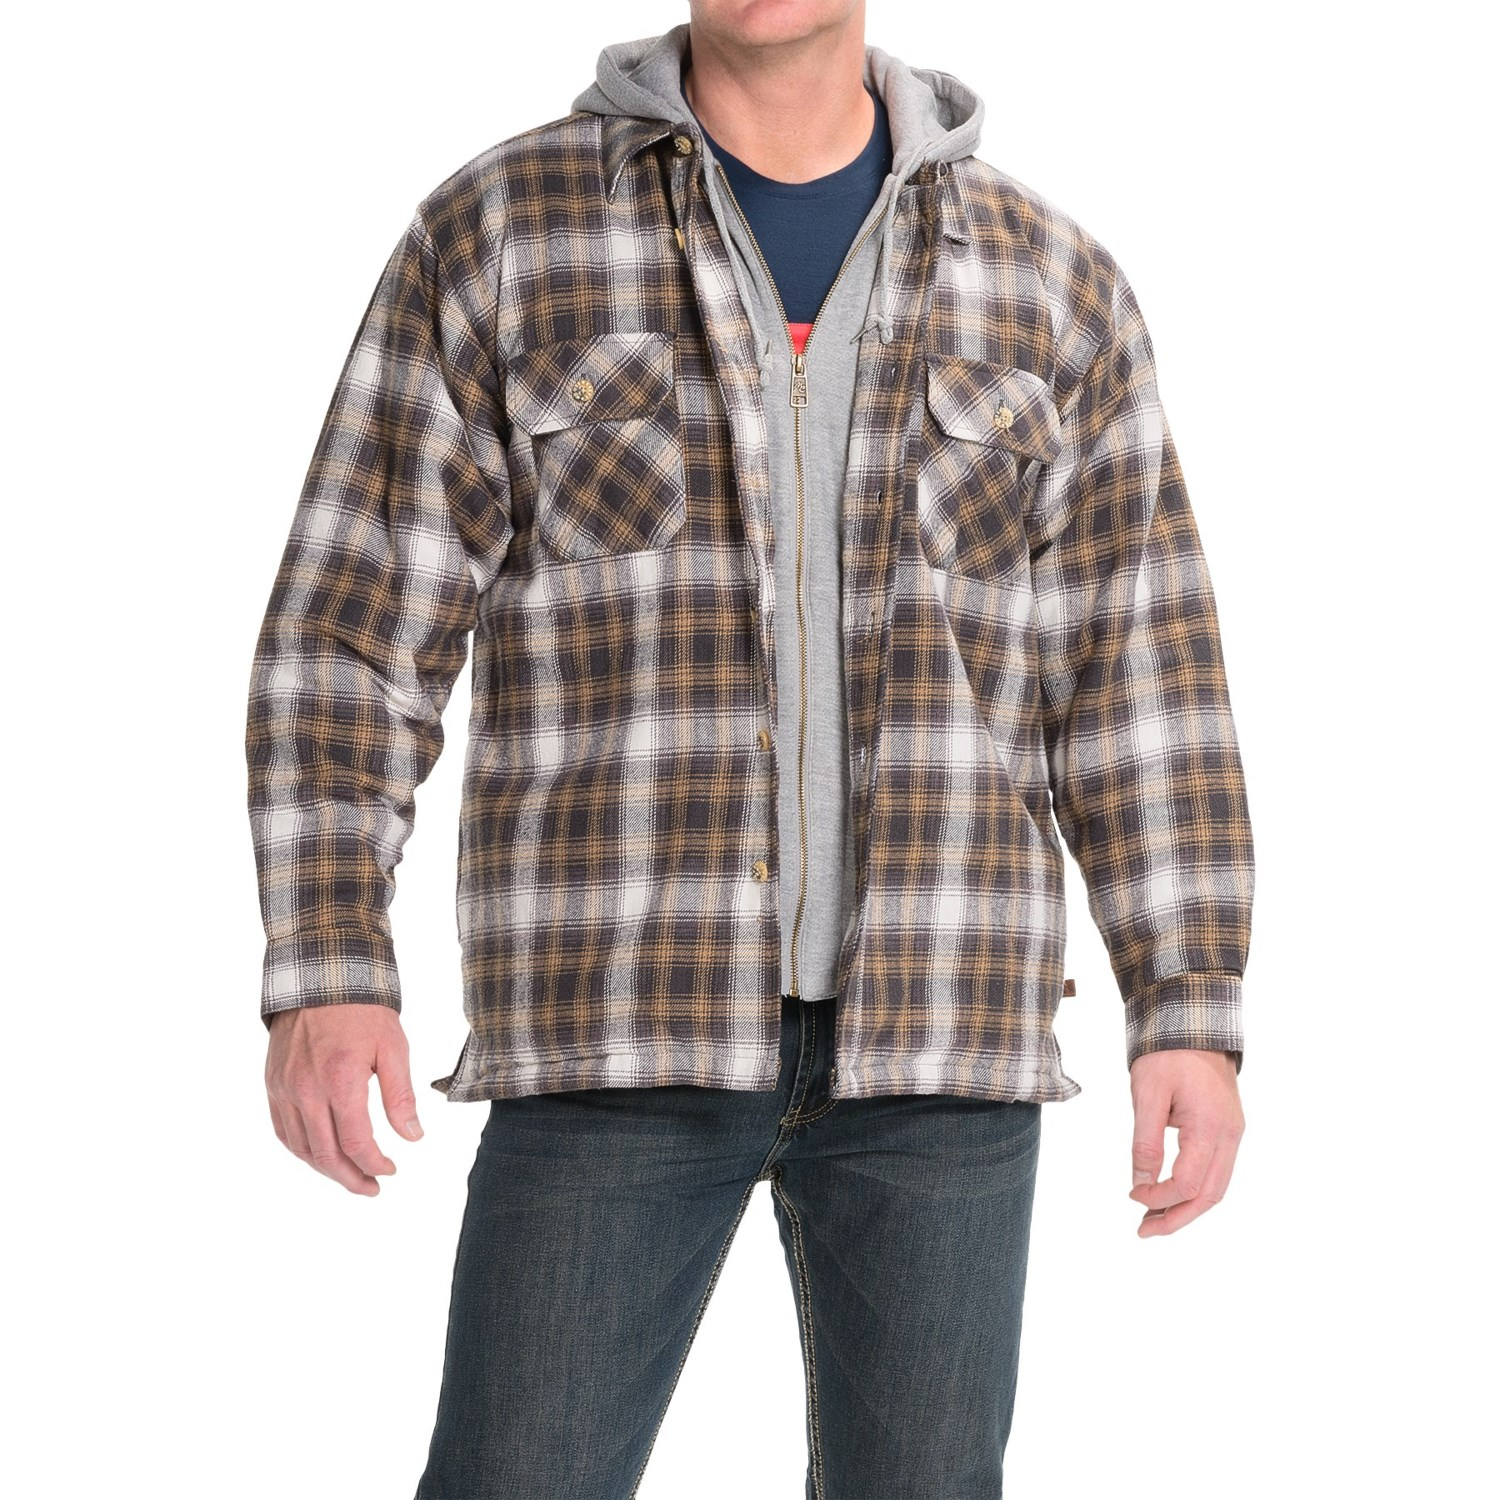 Moose Creek Dakota Flannel Shirt Jacket (For Men) - Save 53%